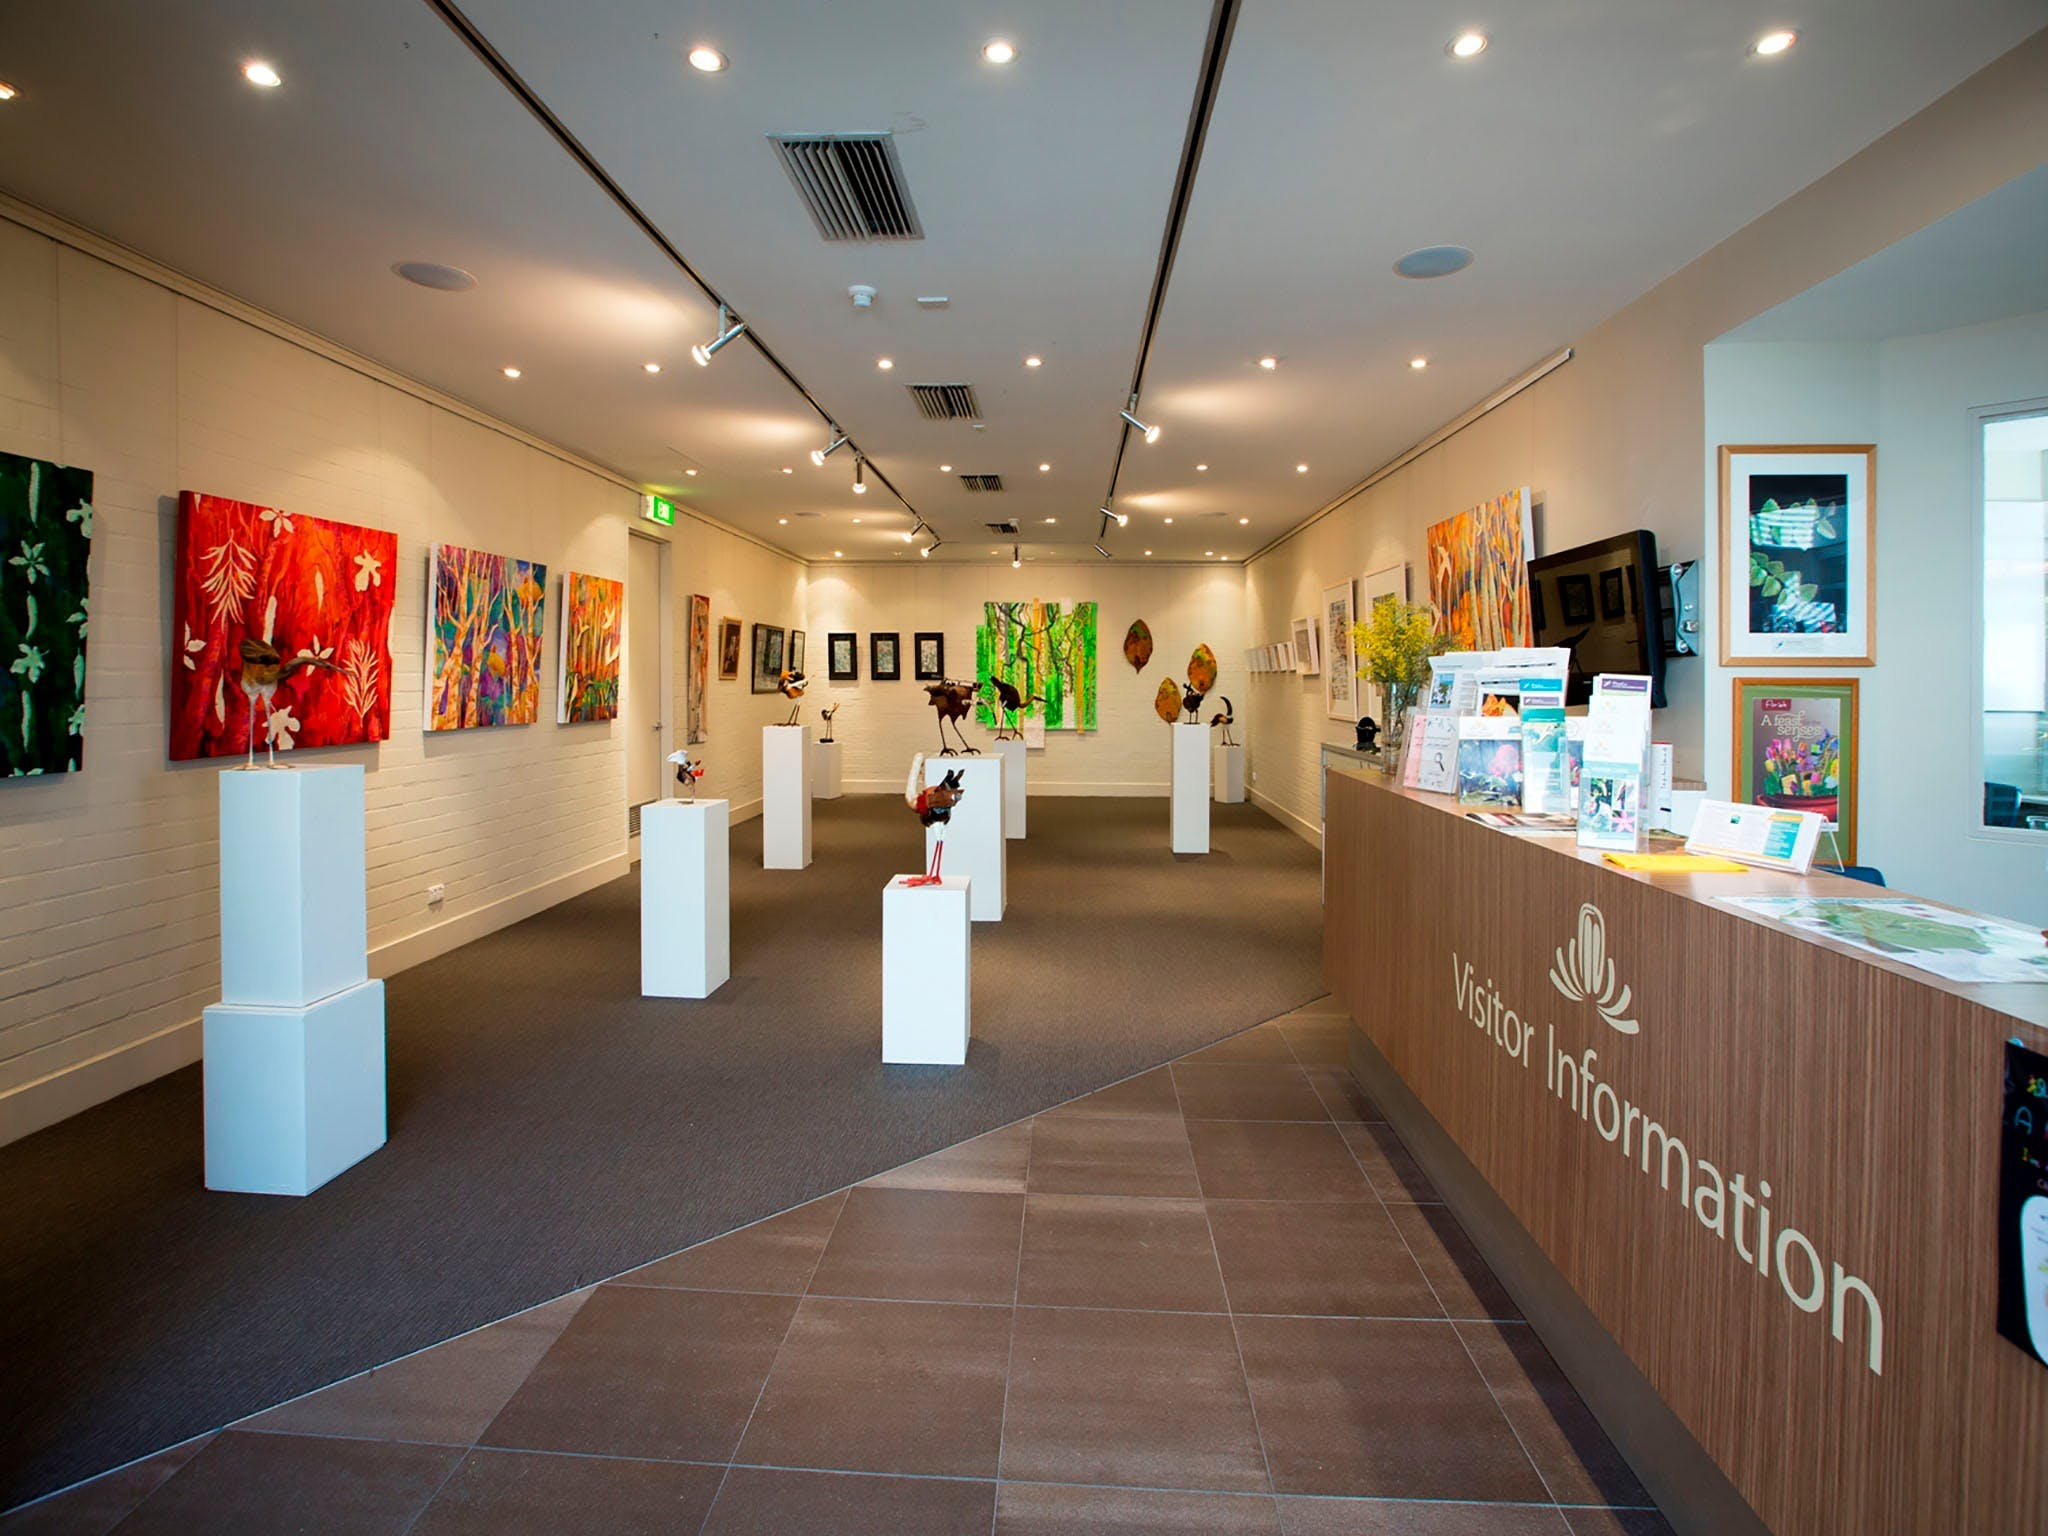 Australian National Botanic Gardens Visitor Centre Gallery - Accommodation Ballina